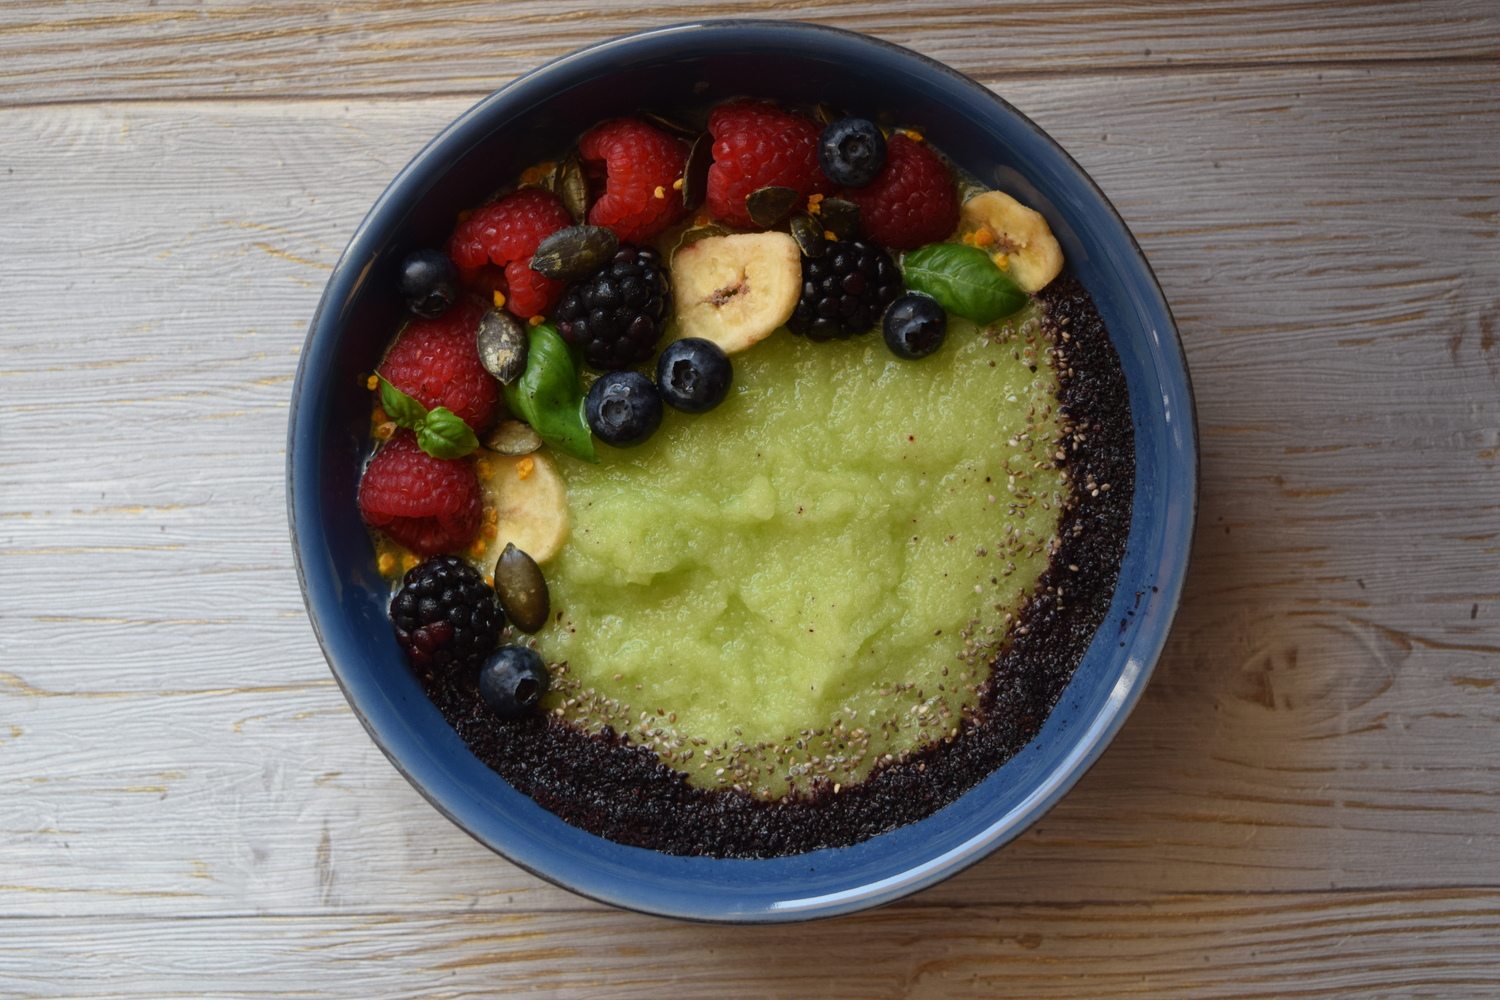 Dairy-free green smoothie bowl with green apple, celery, basil, chia seeds, fresh berries and Bilberry powder. Recipe here.